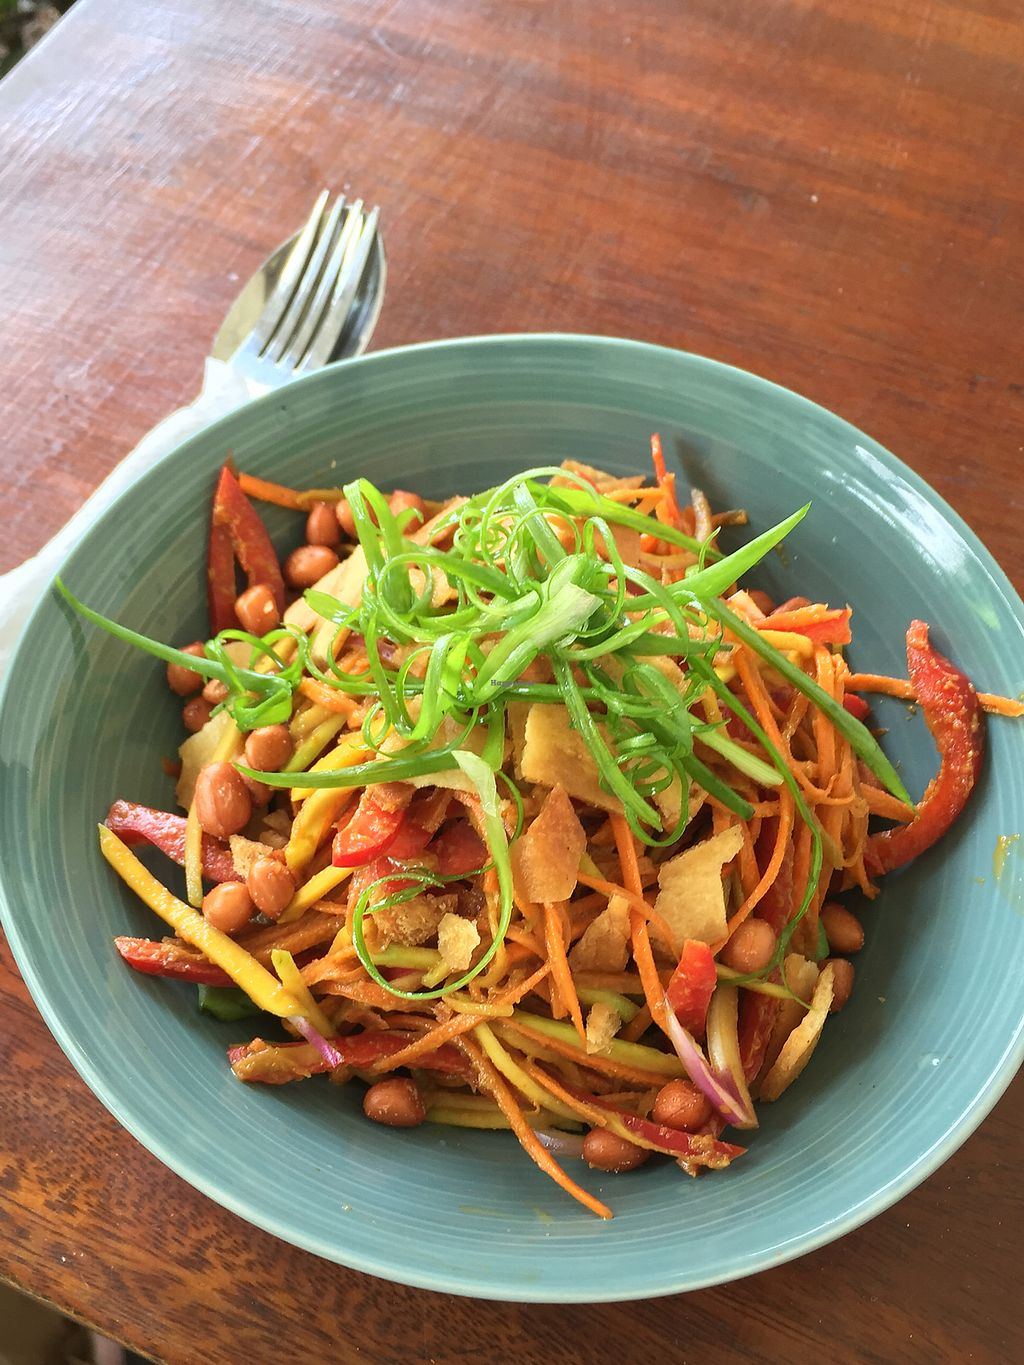 """Photo of Cafe Kumbuk Good Market  by <a href=""""/members/profile/peterstuckings"""">peterstuckings</a> <br/>Thai salad - vegan <br/> March 14, 2018  - <a href='/contact/abuse/image/86812/370429'>Report</a>"""